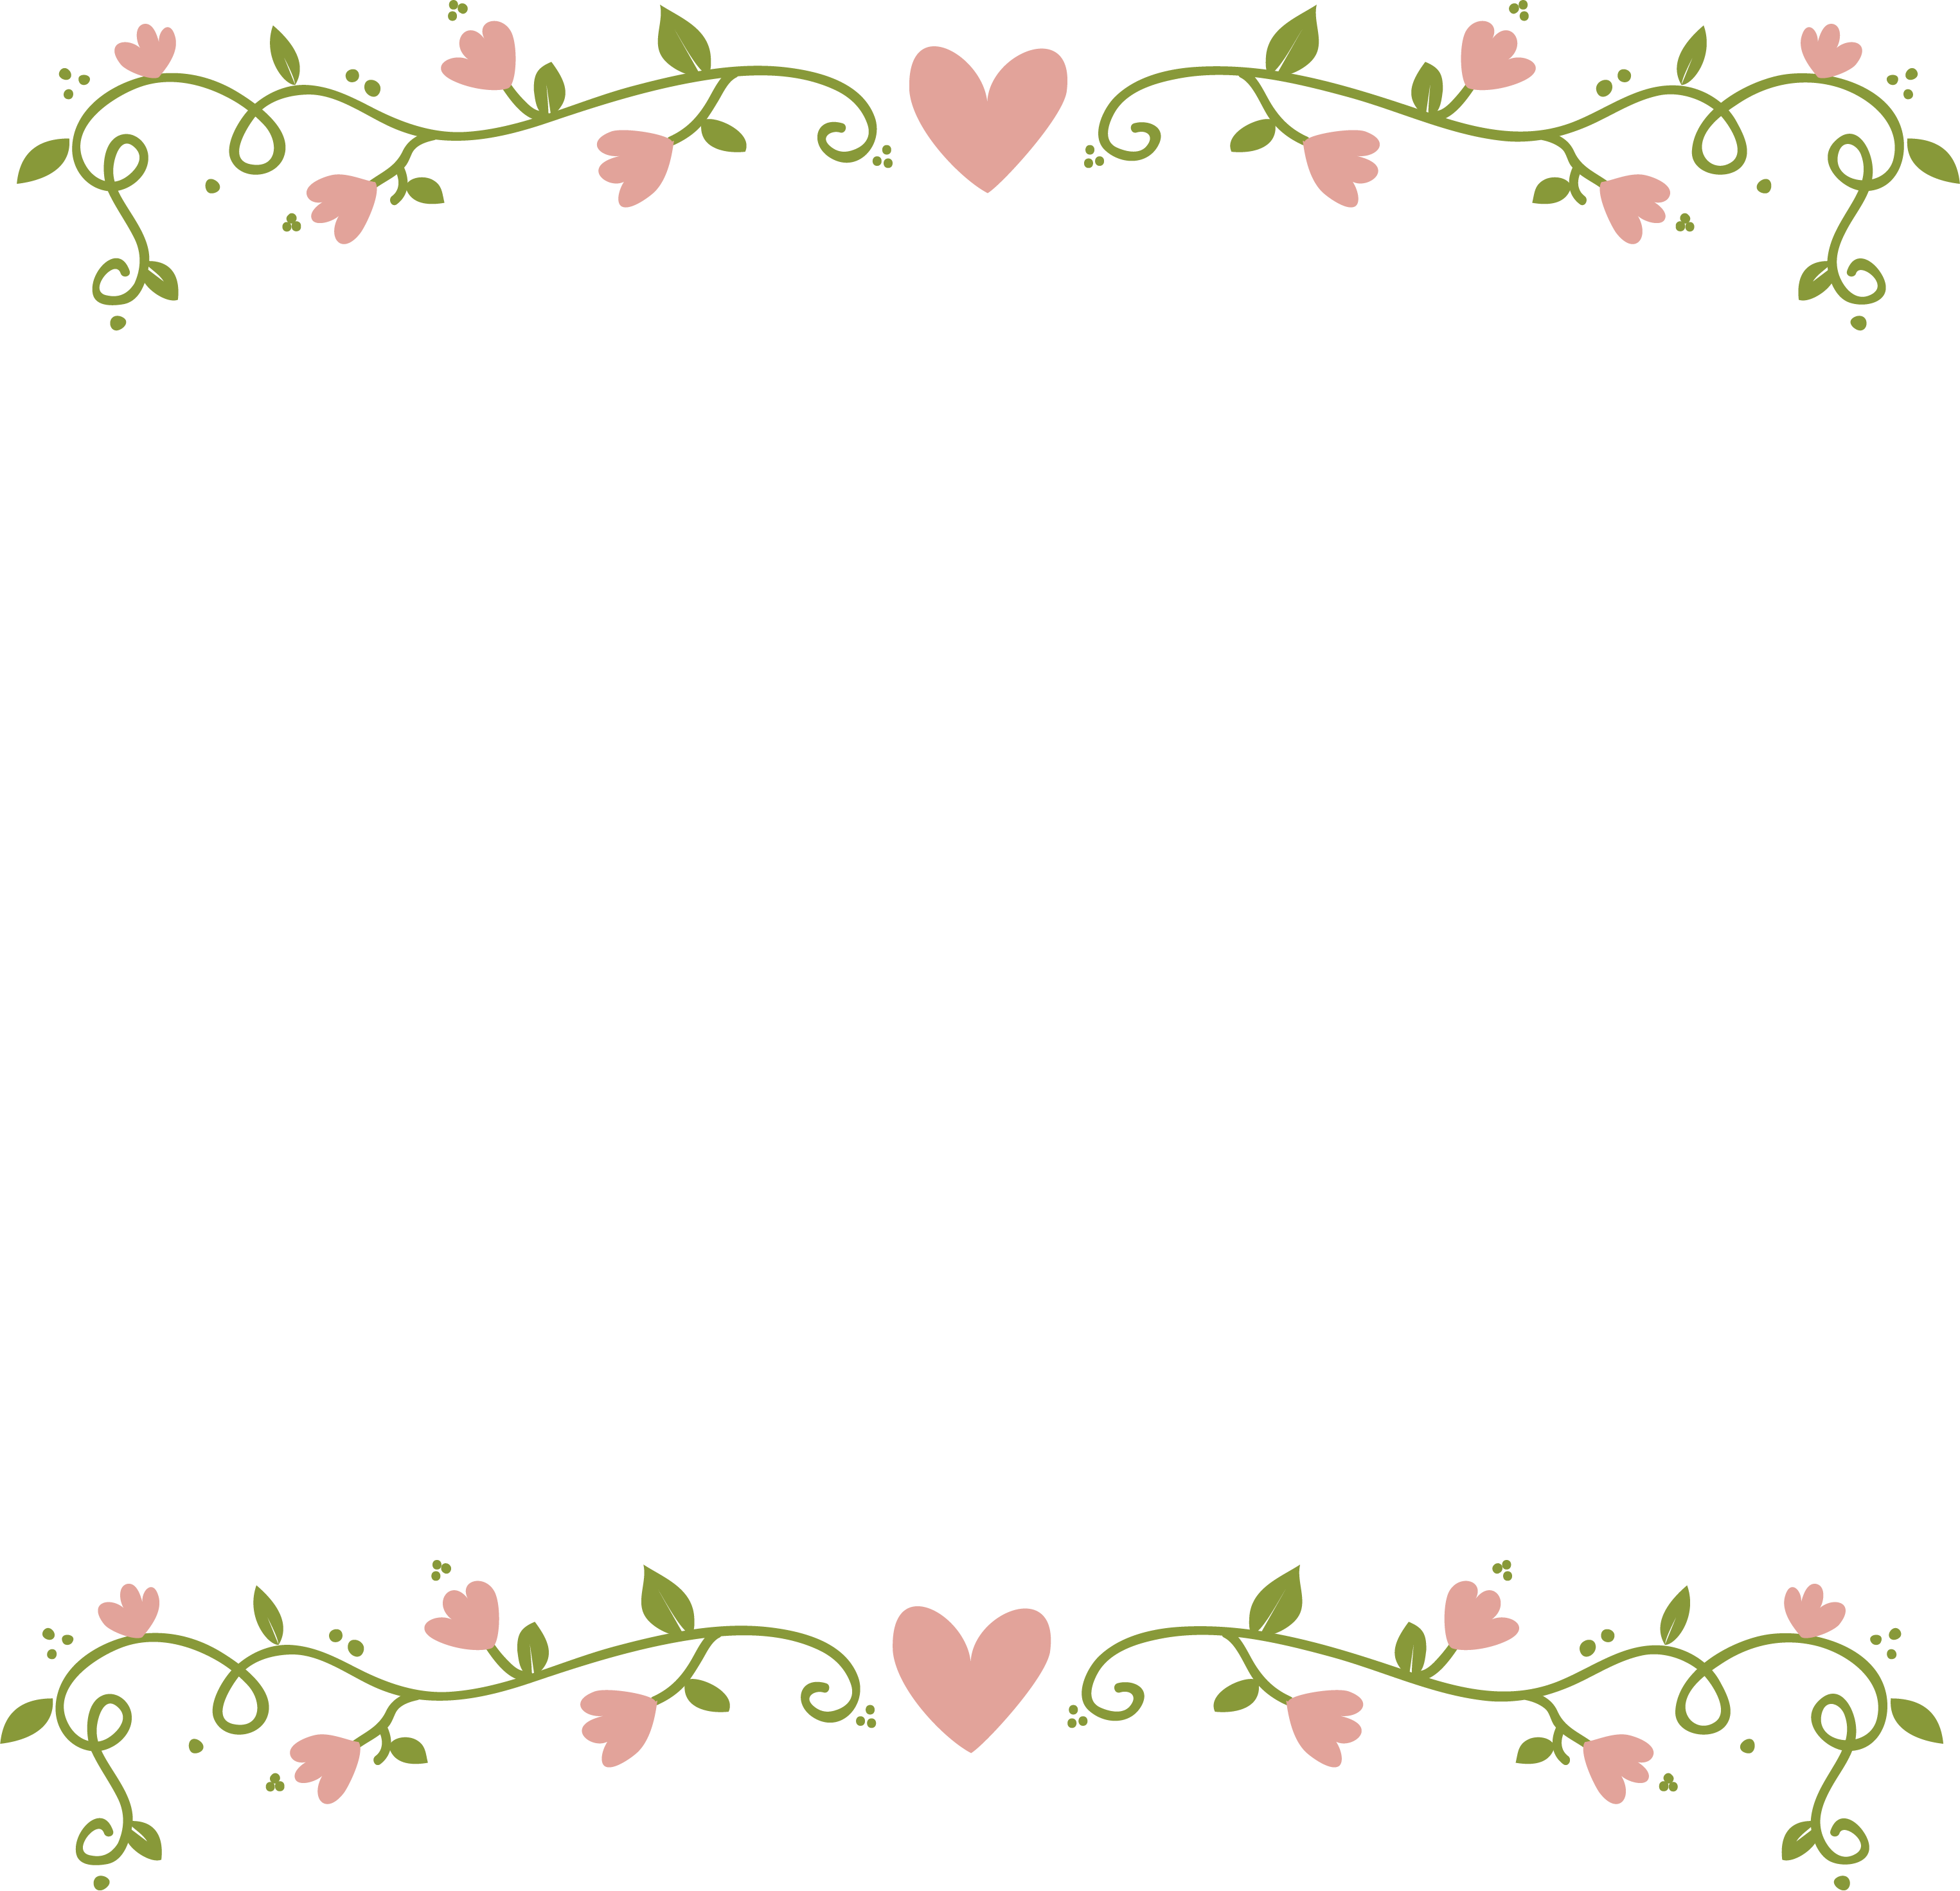 Pink floral border png. Flowers clip art love